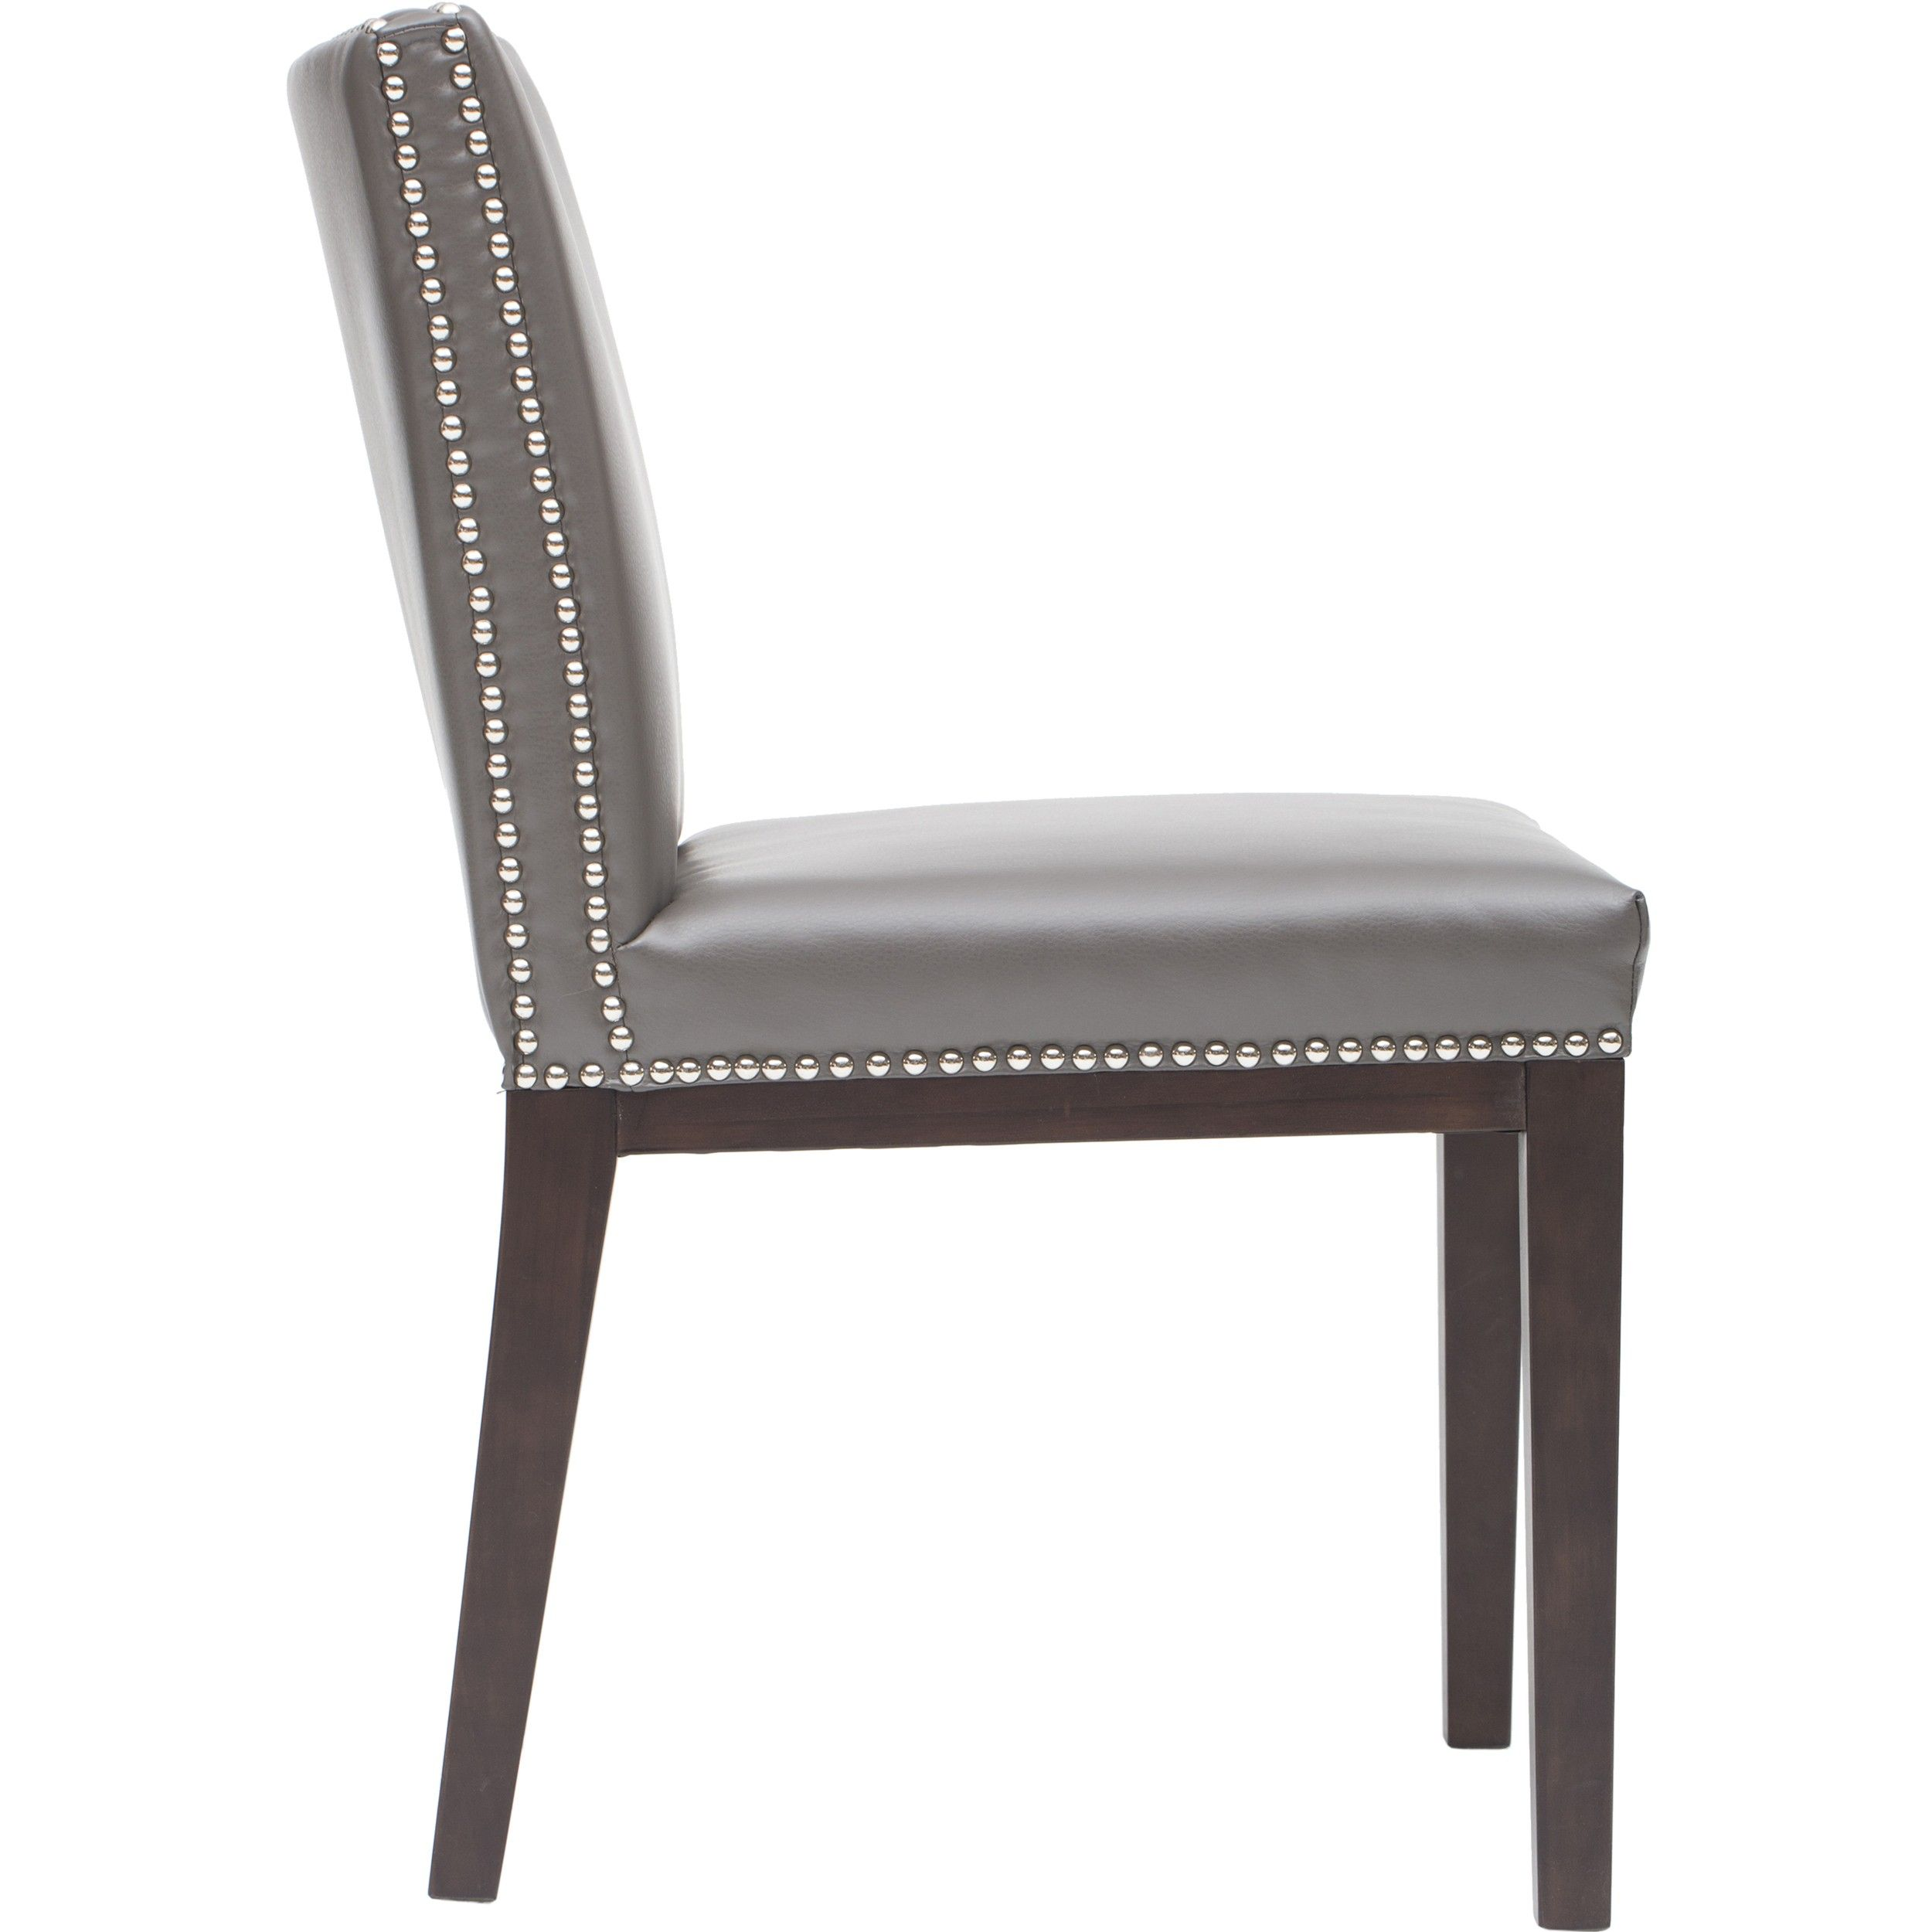 Leather Dining Chairs With Nailheads Gray And White Chair